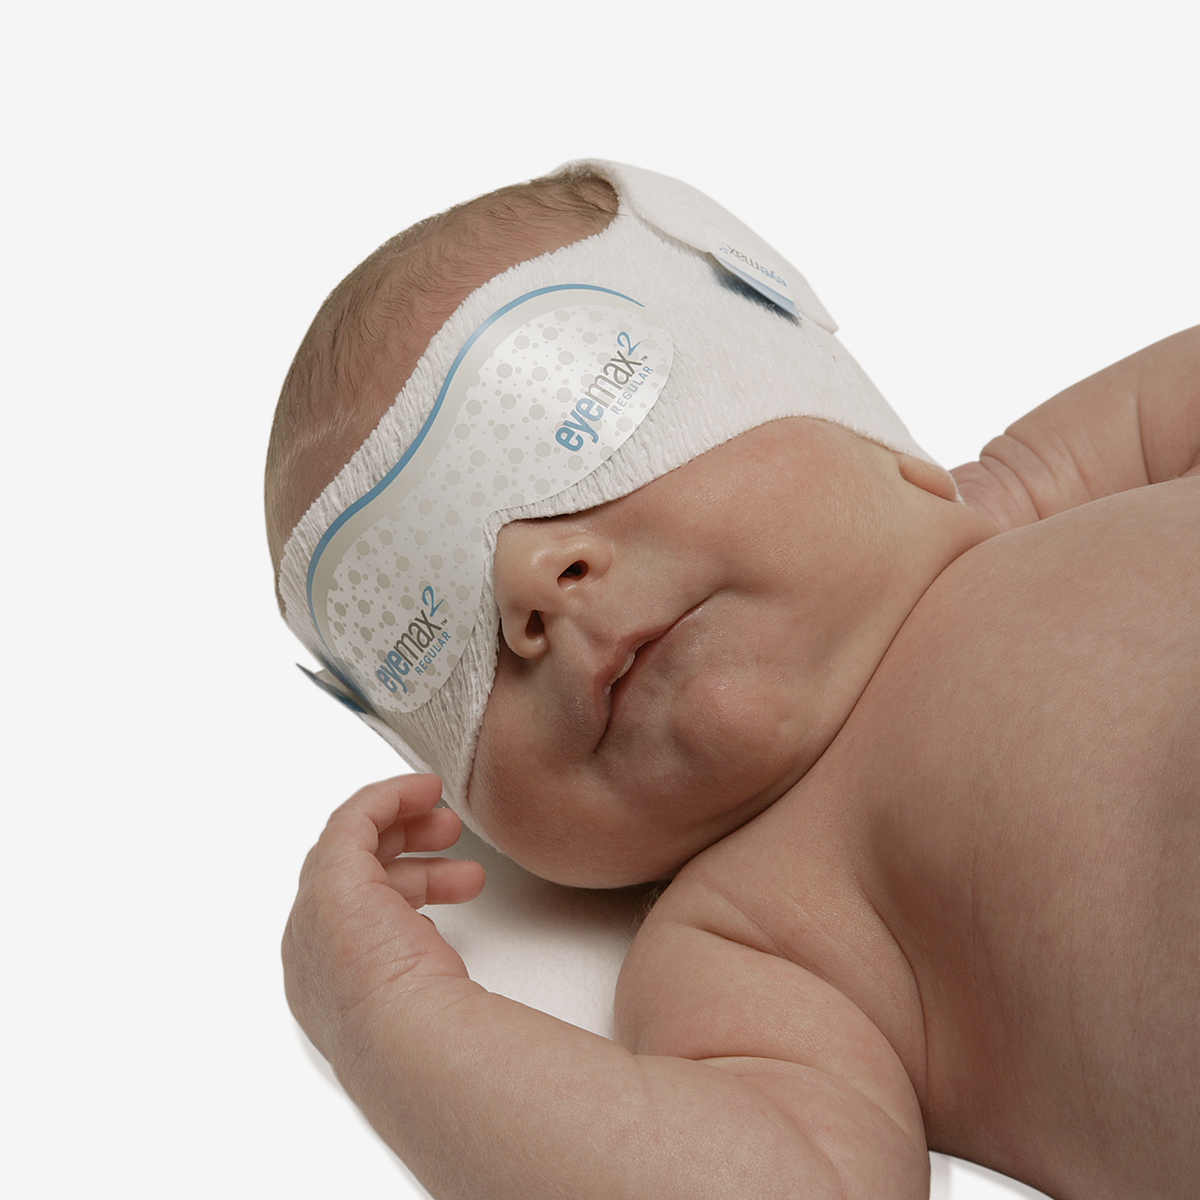 EyeMax 2 Regular phototherapy eye mask on infant